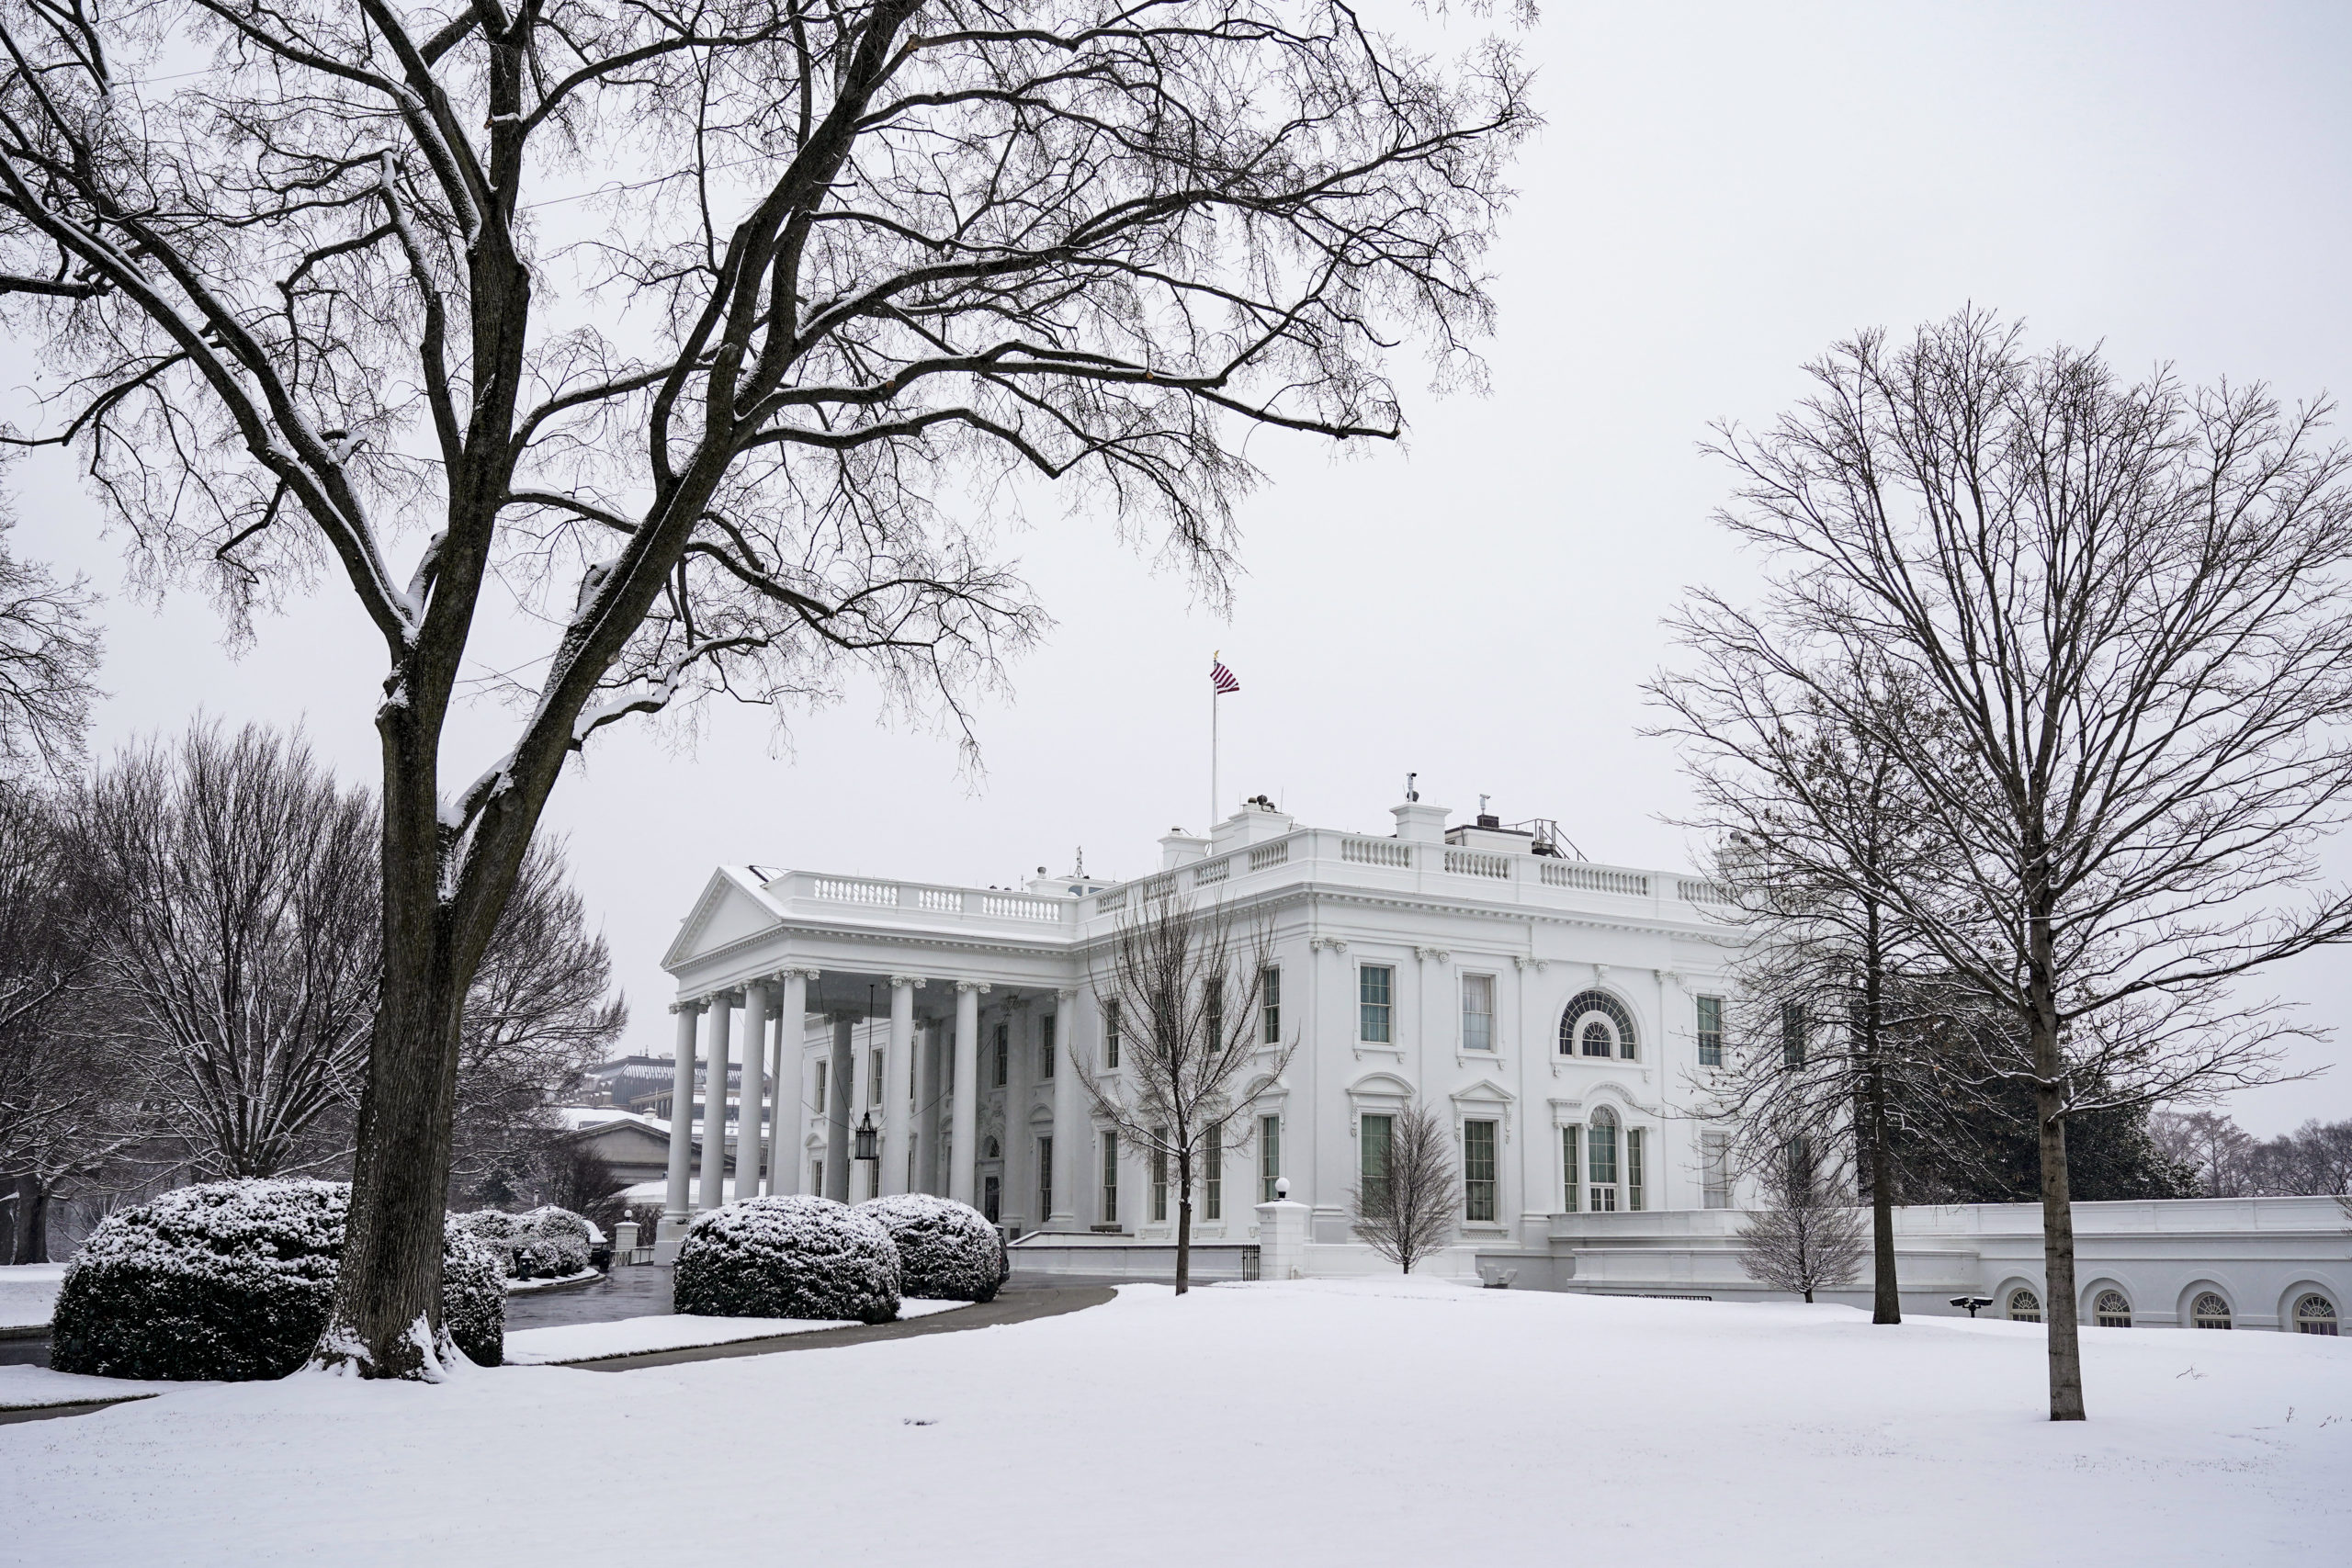 WASHINGTON, DC - JANUARY 31: The White House ground are covered in snow during a snow storm on January 31, 2021 in Washington, DC. Washington is expecting 3 to 5 inches of snow during the first major snow storm of the year. (Photo by Joshua Roberts/Getty Images)